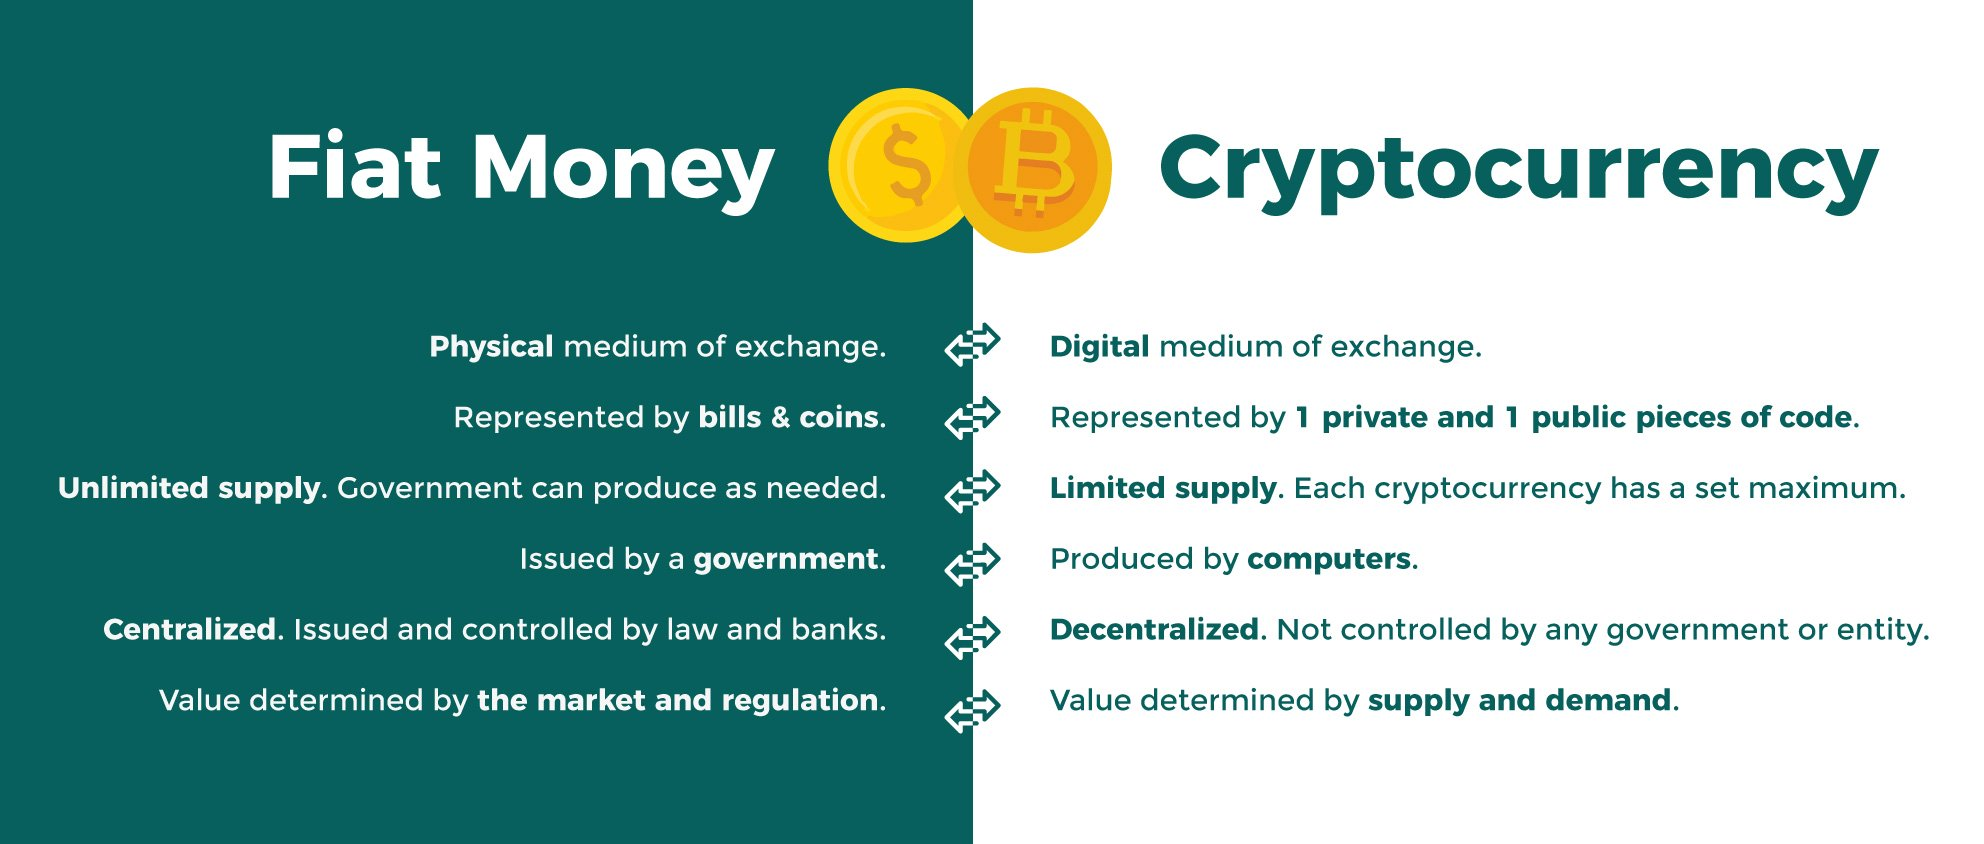 crypto vs banking FIAT Money vs Cryptocurrency definitions